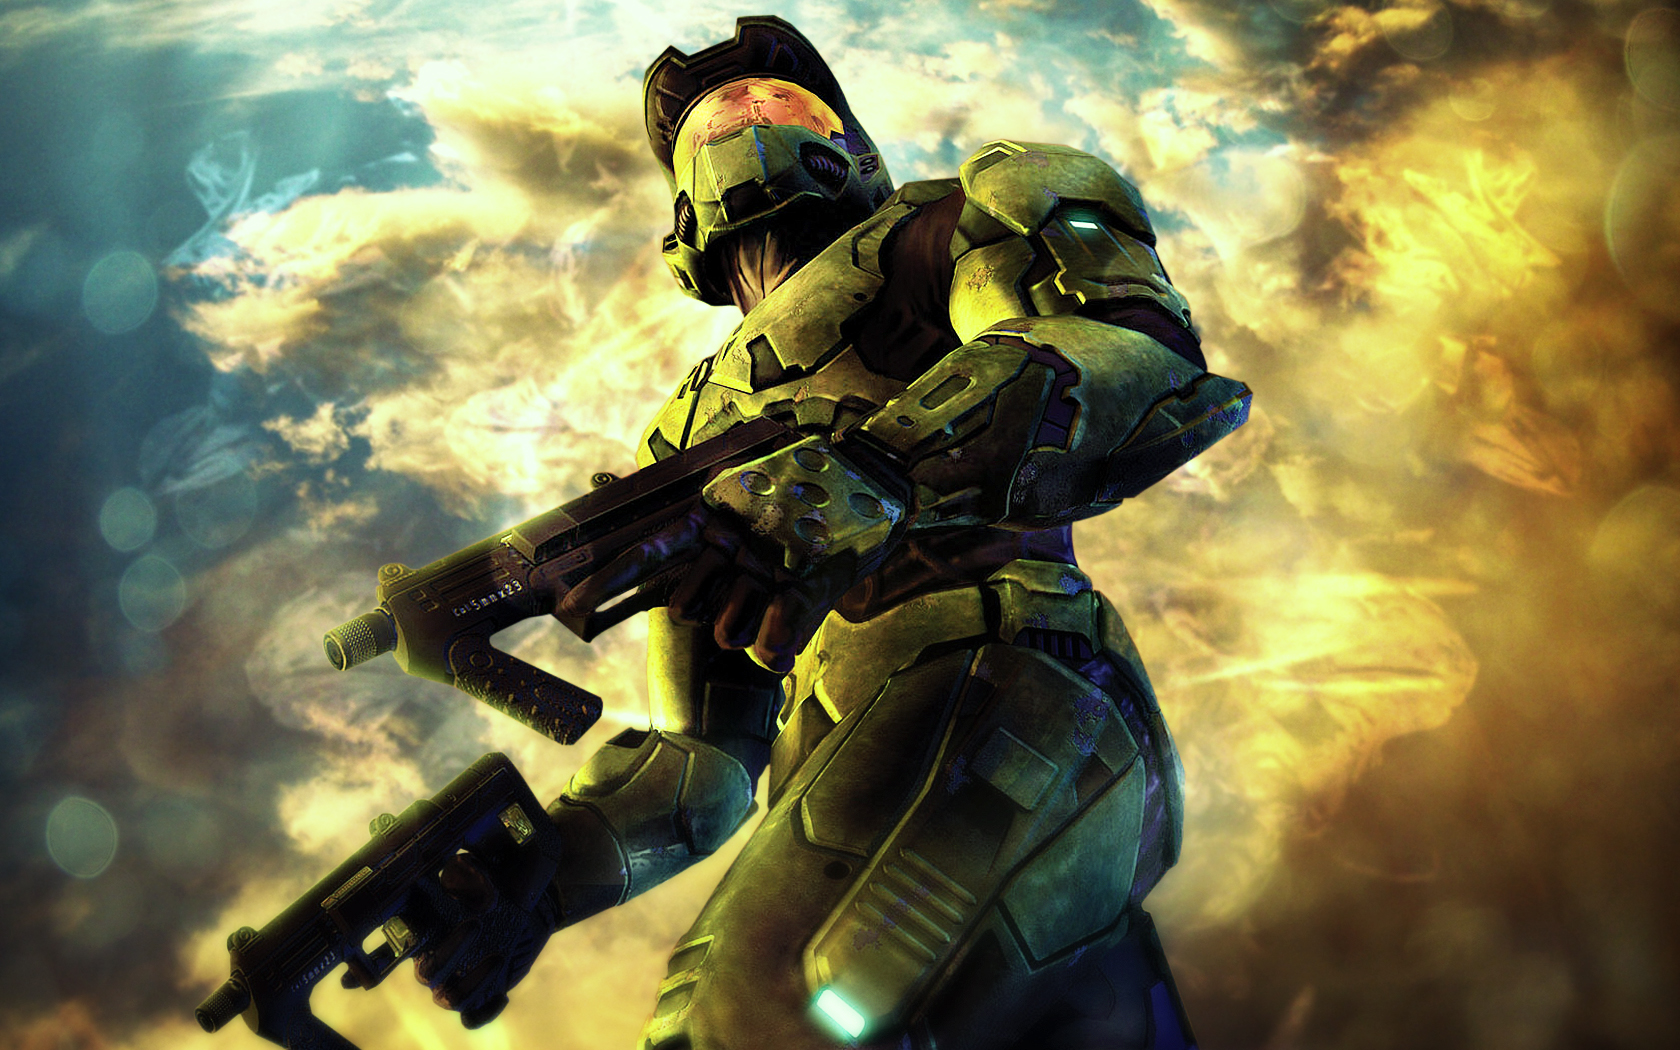 """Halo Documentary """"Remaking The Legend"""" Releases on October 31; New Trailer Gives a Look at Halo 2: Anniversary   DualShockers"""